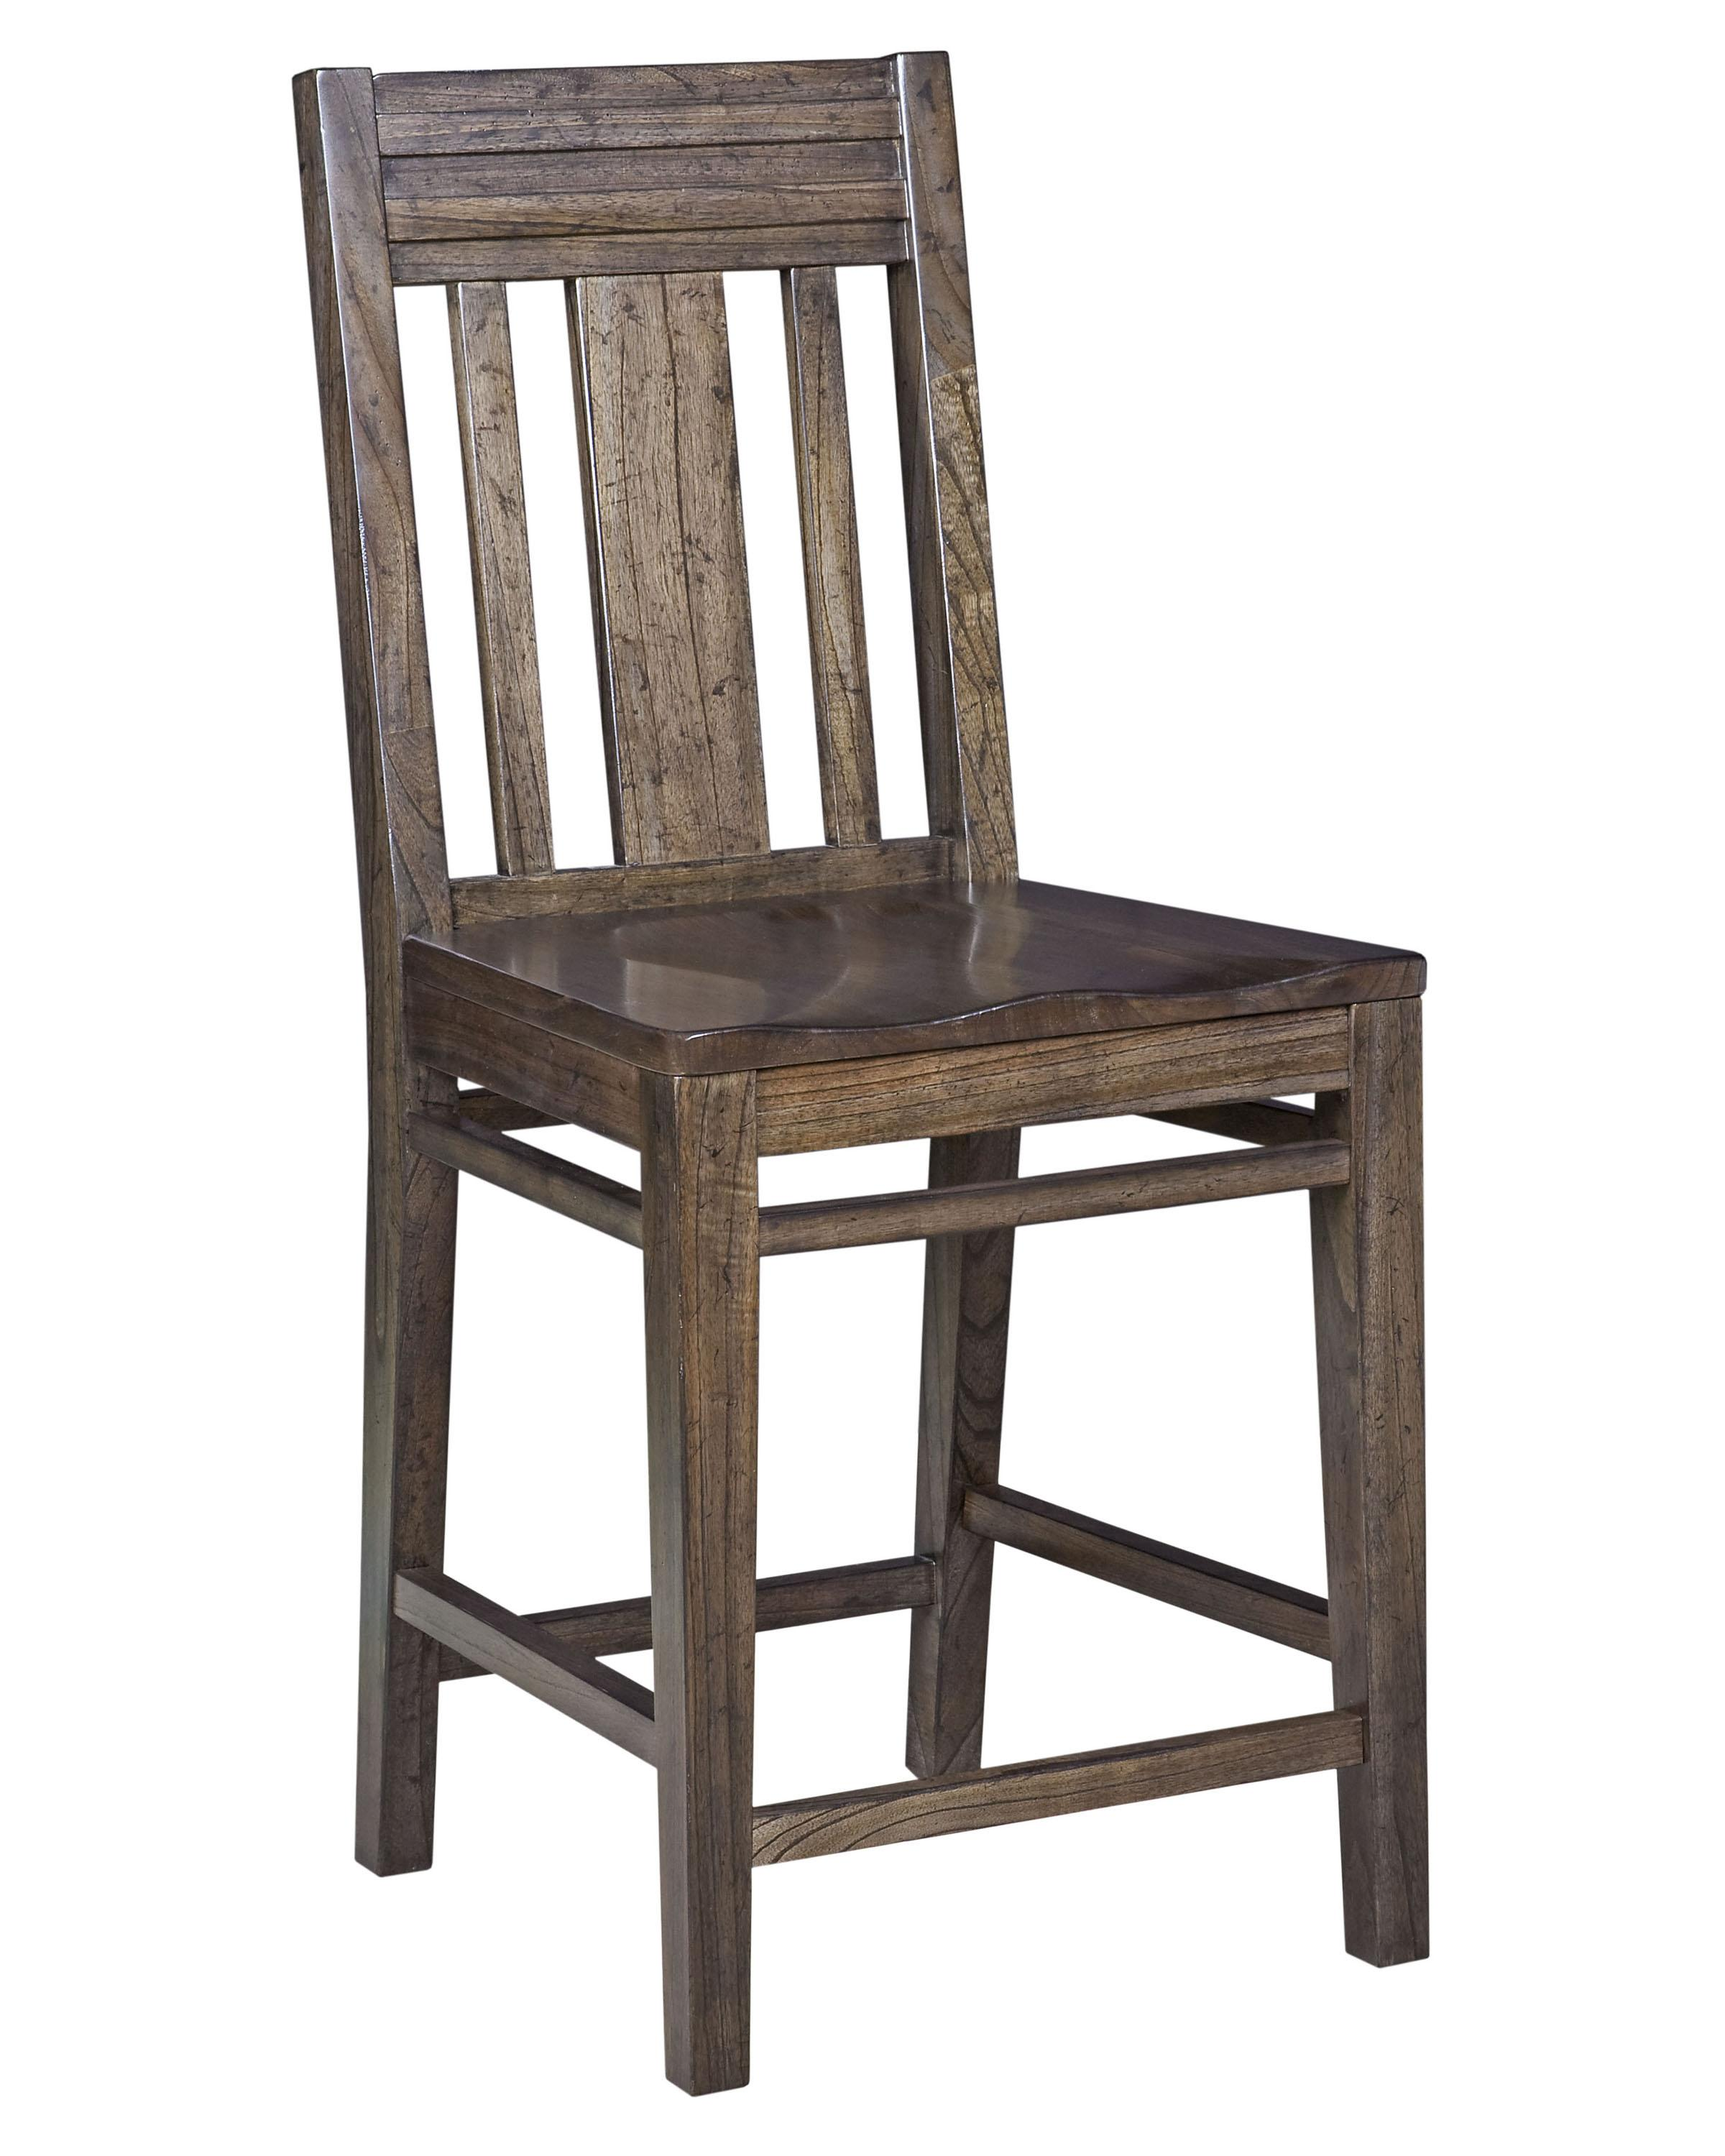 Contemporary solid wood slat back bar stool by kincaid